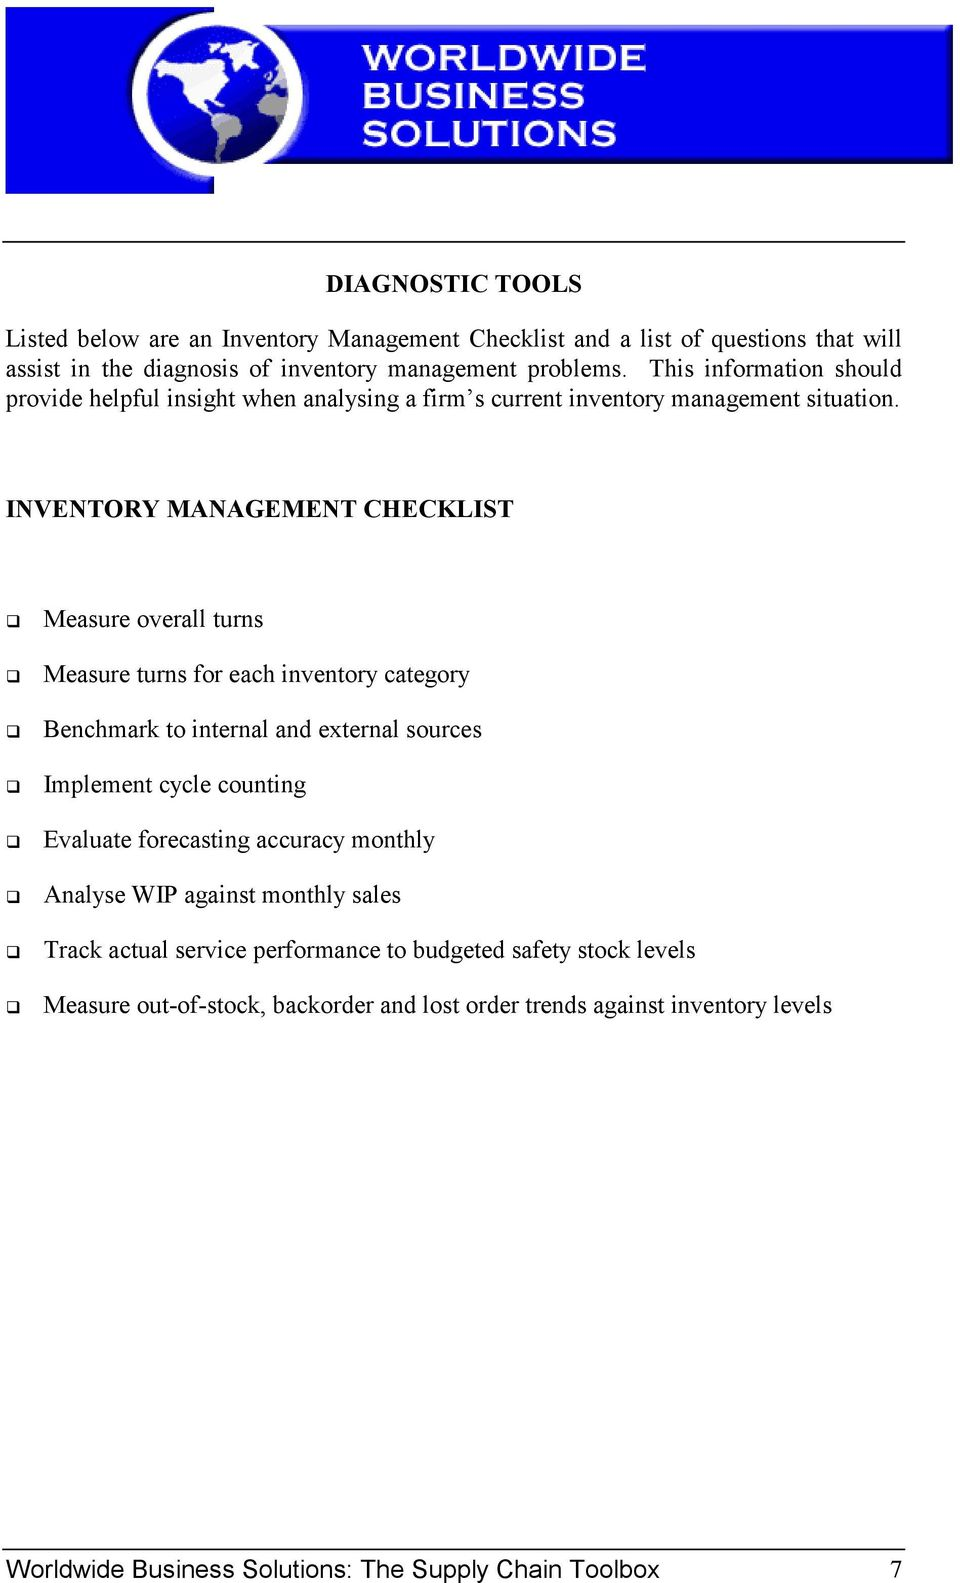 INVENTORY MANAGEMENT CHECKLIST Measure overall turns Measure turns for each inventory category Benchmark to internal and external sources Implement cycle counting Evaluate